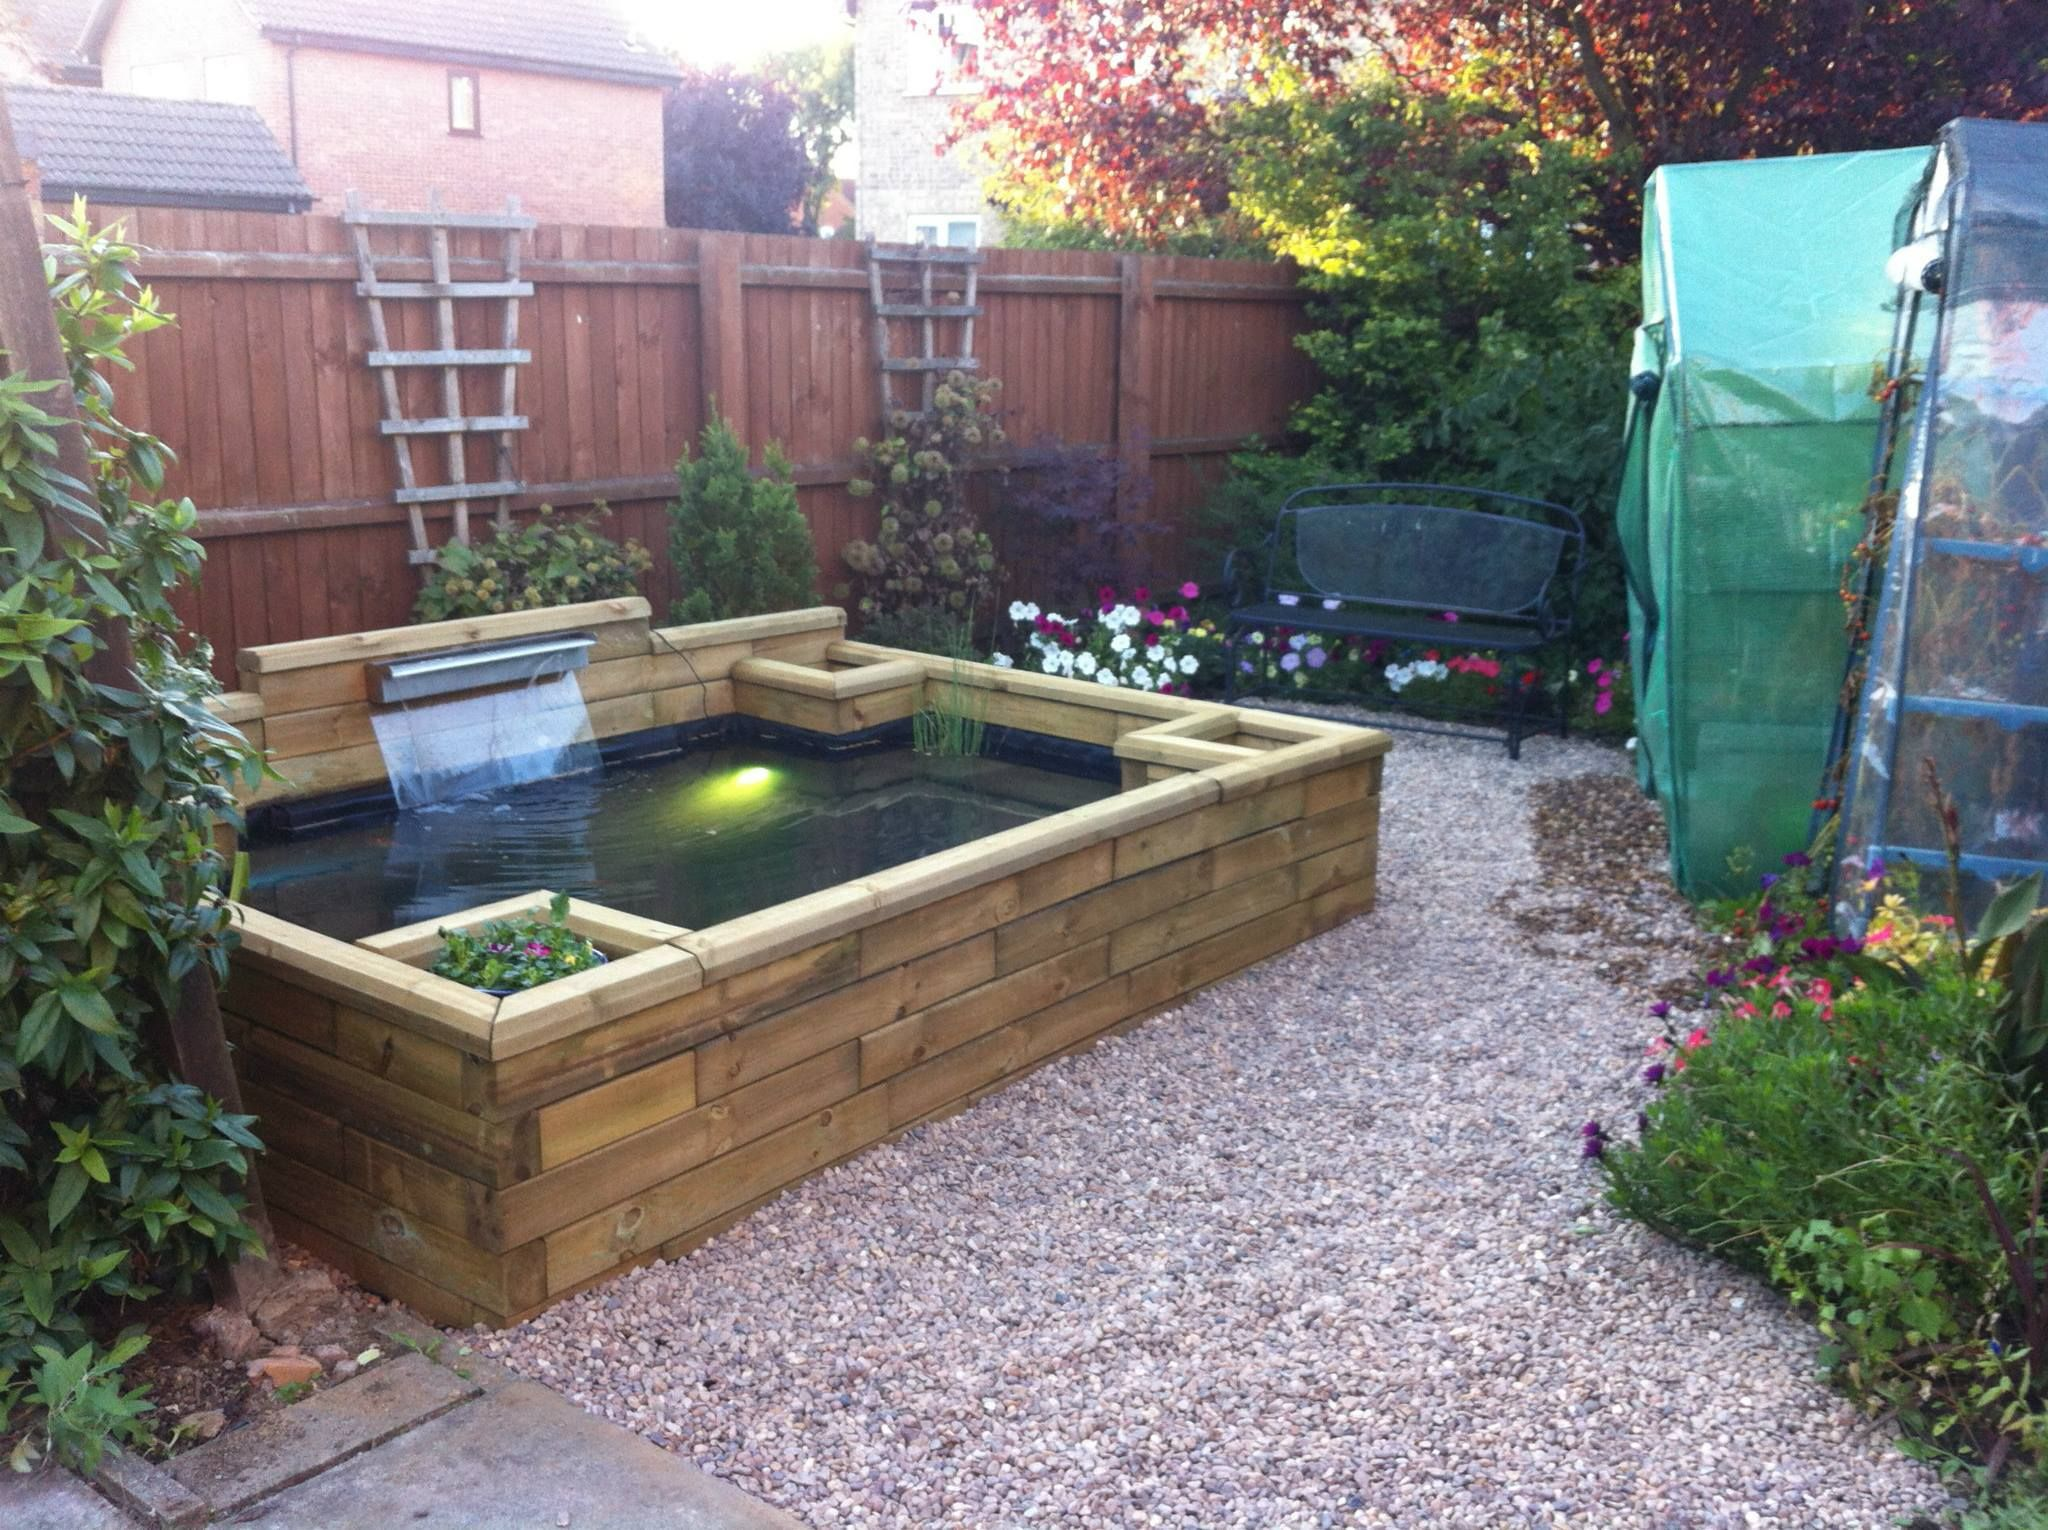 Woodblocx koi pond customers for Koi pool water gardens blackpool